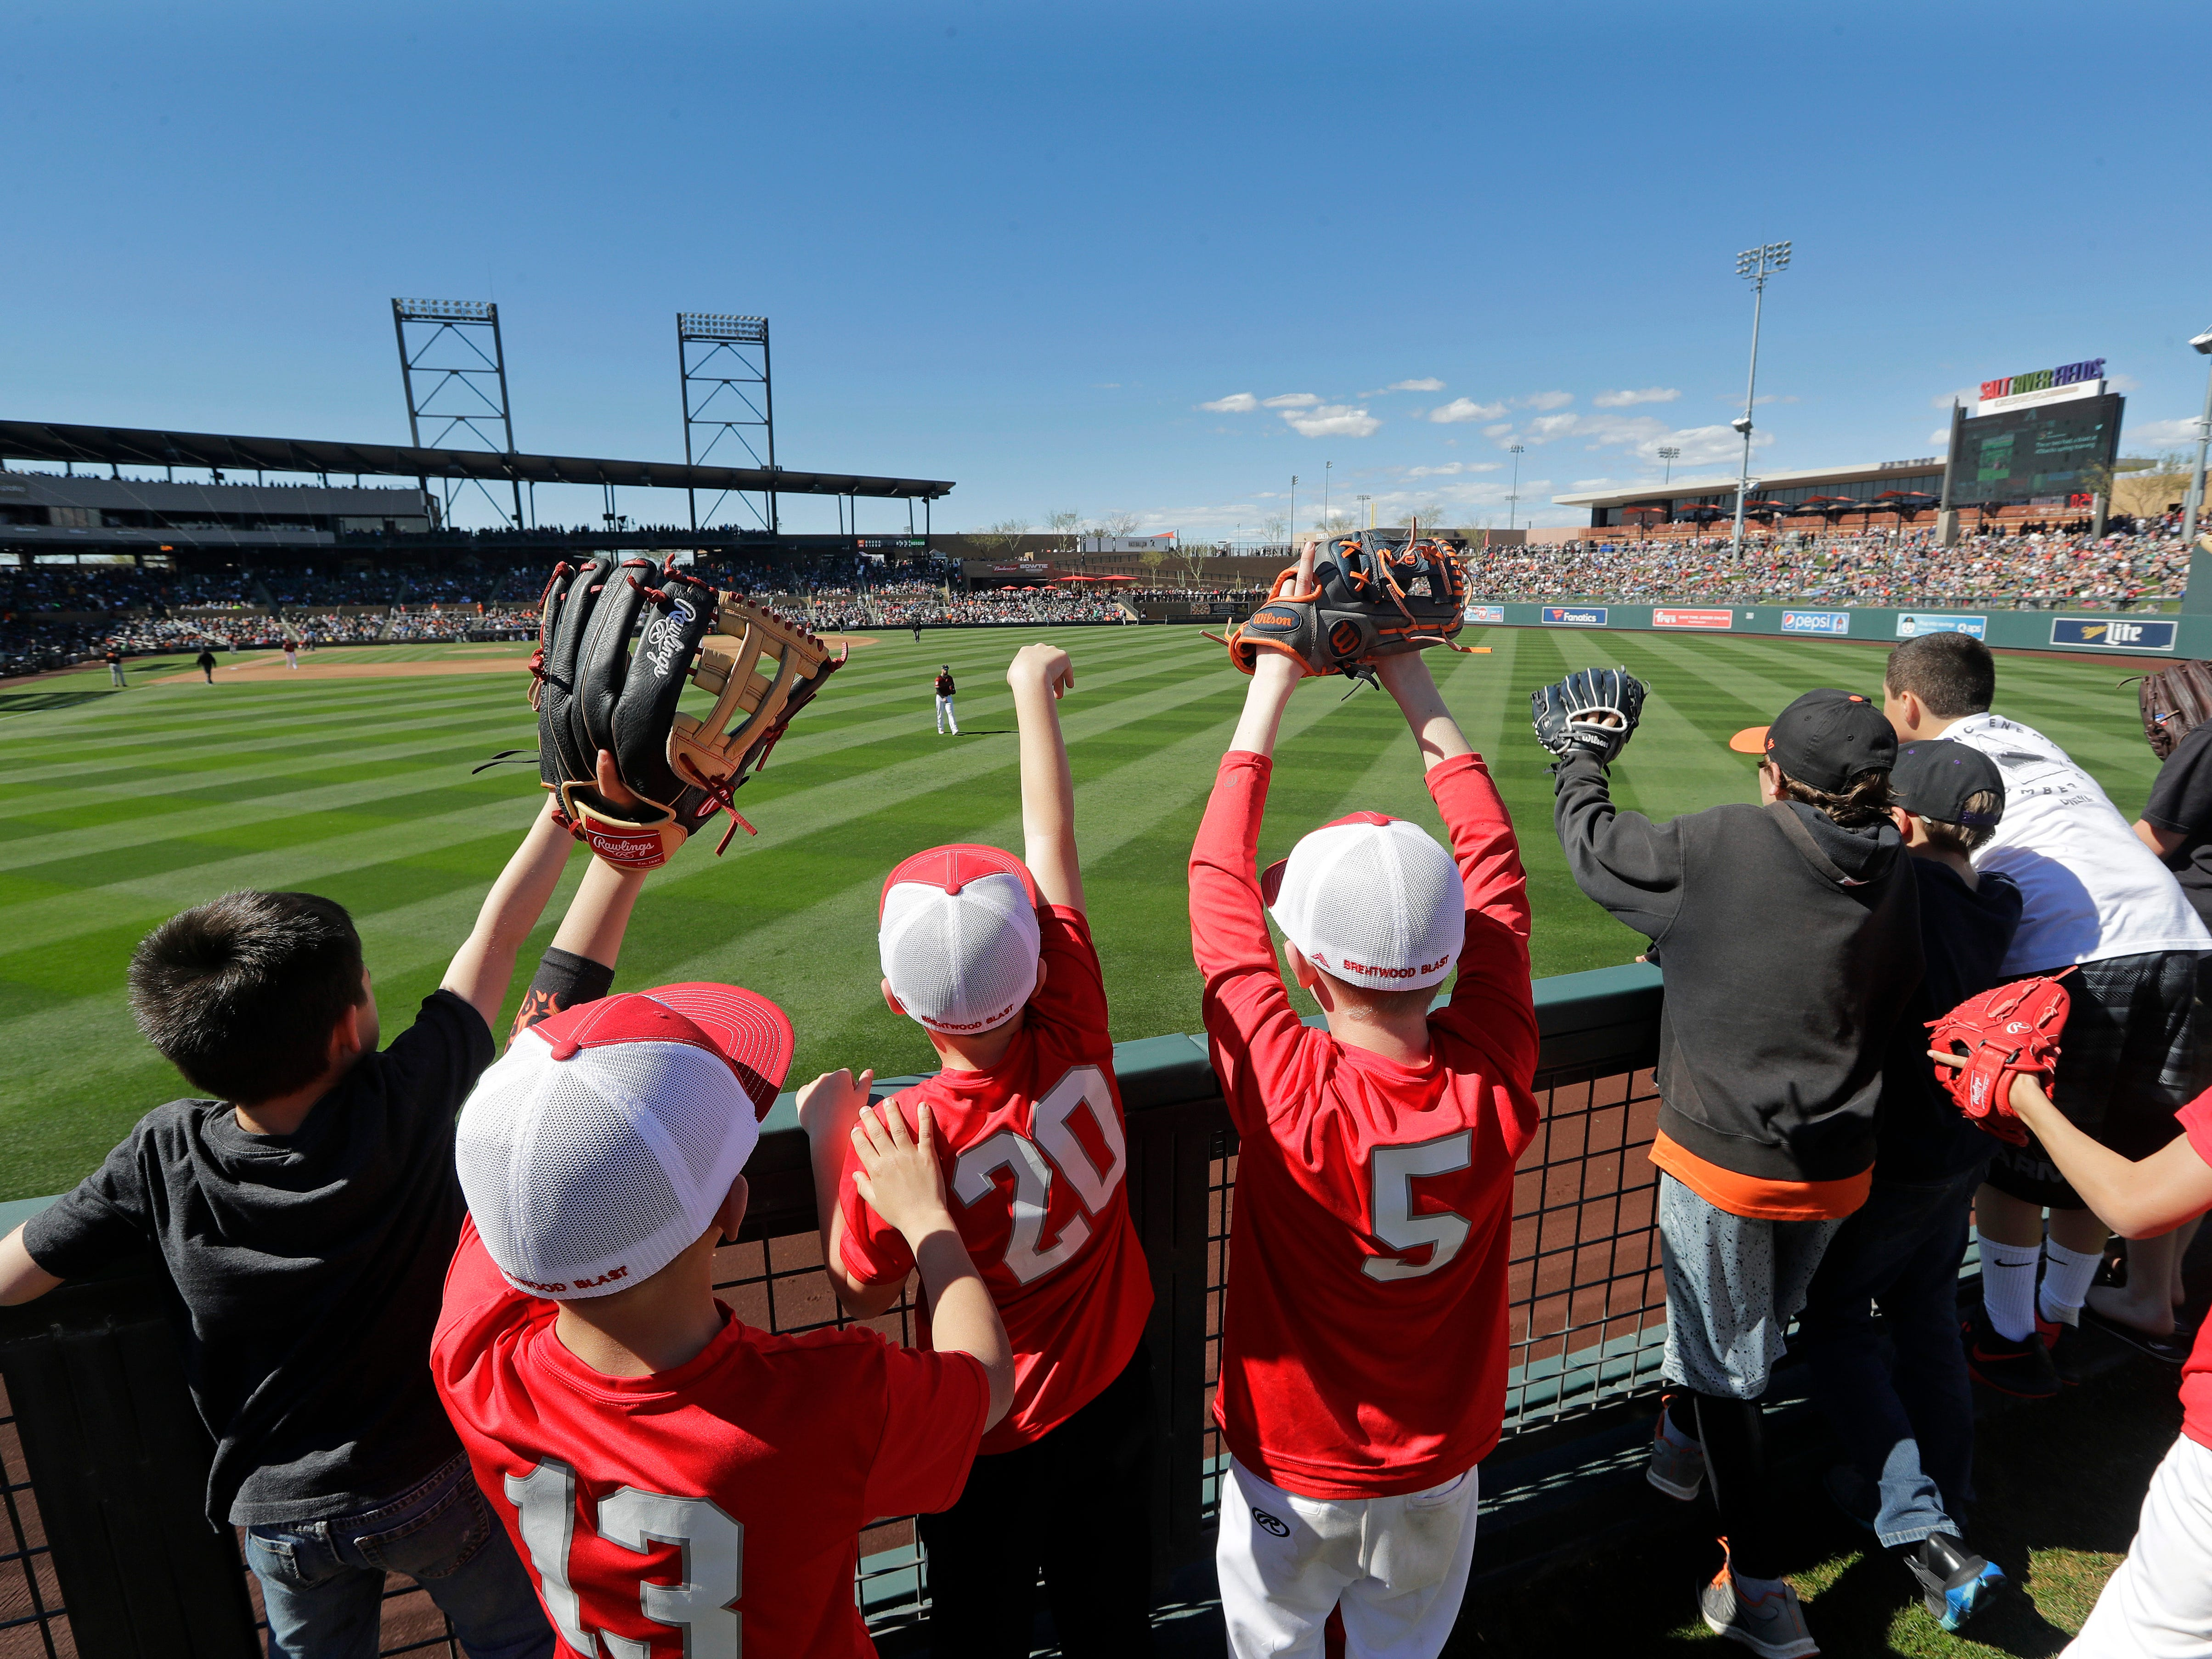 Children line the left field fence as they call for a ball from players warming up between innings of a spring training baseball game between the San Francisco Giants and the Arizona Diamondbacks, Thursday, March 14, 2019, in Scottsdale, Ariz.